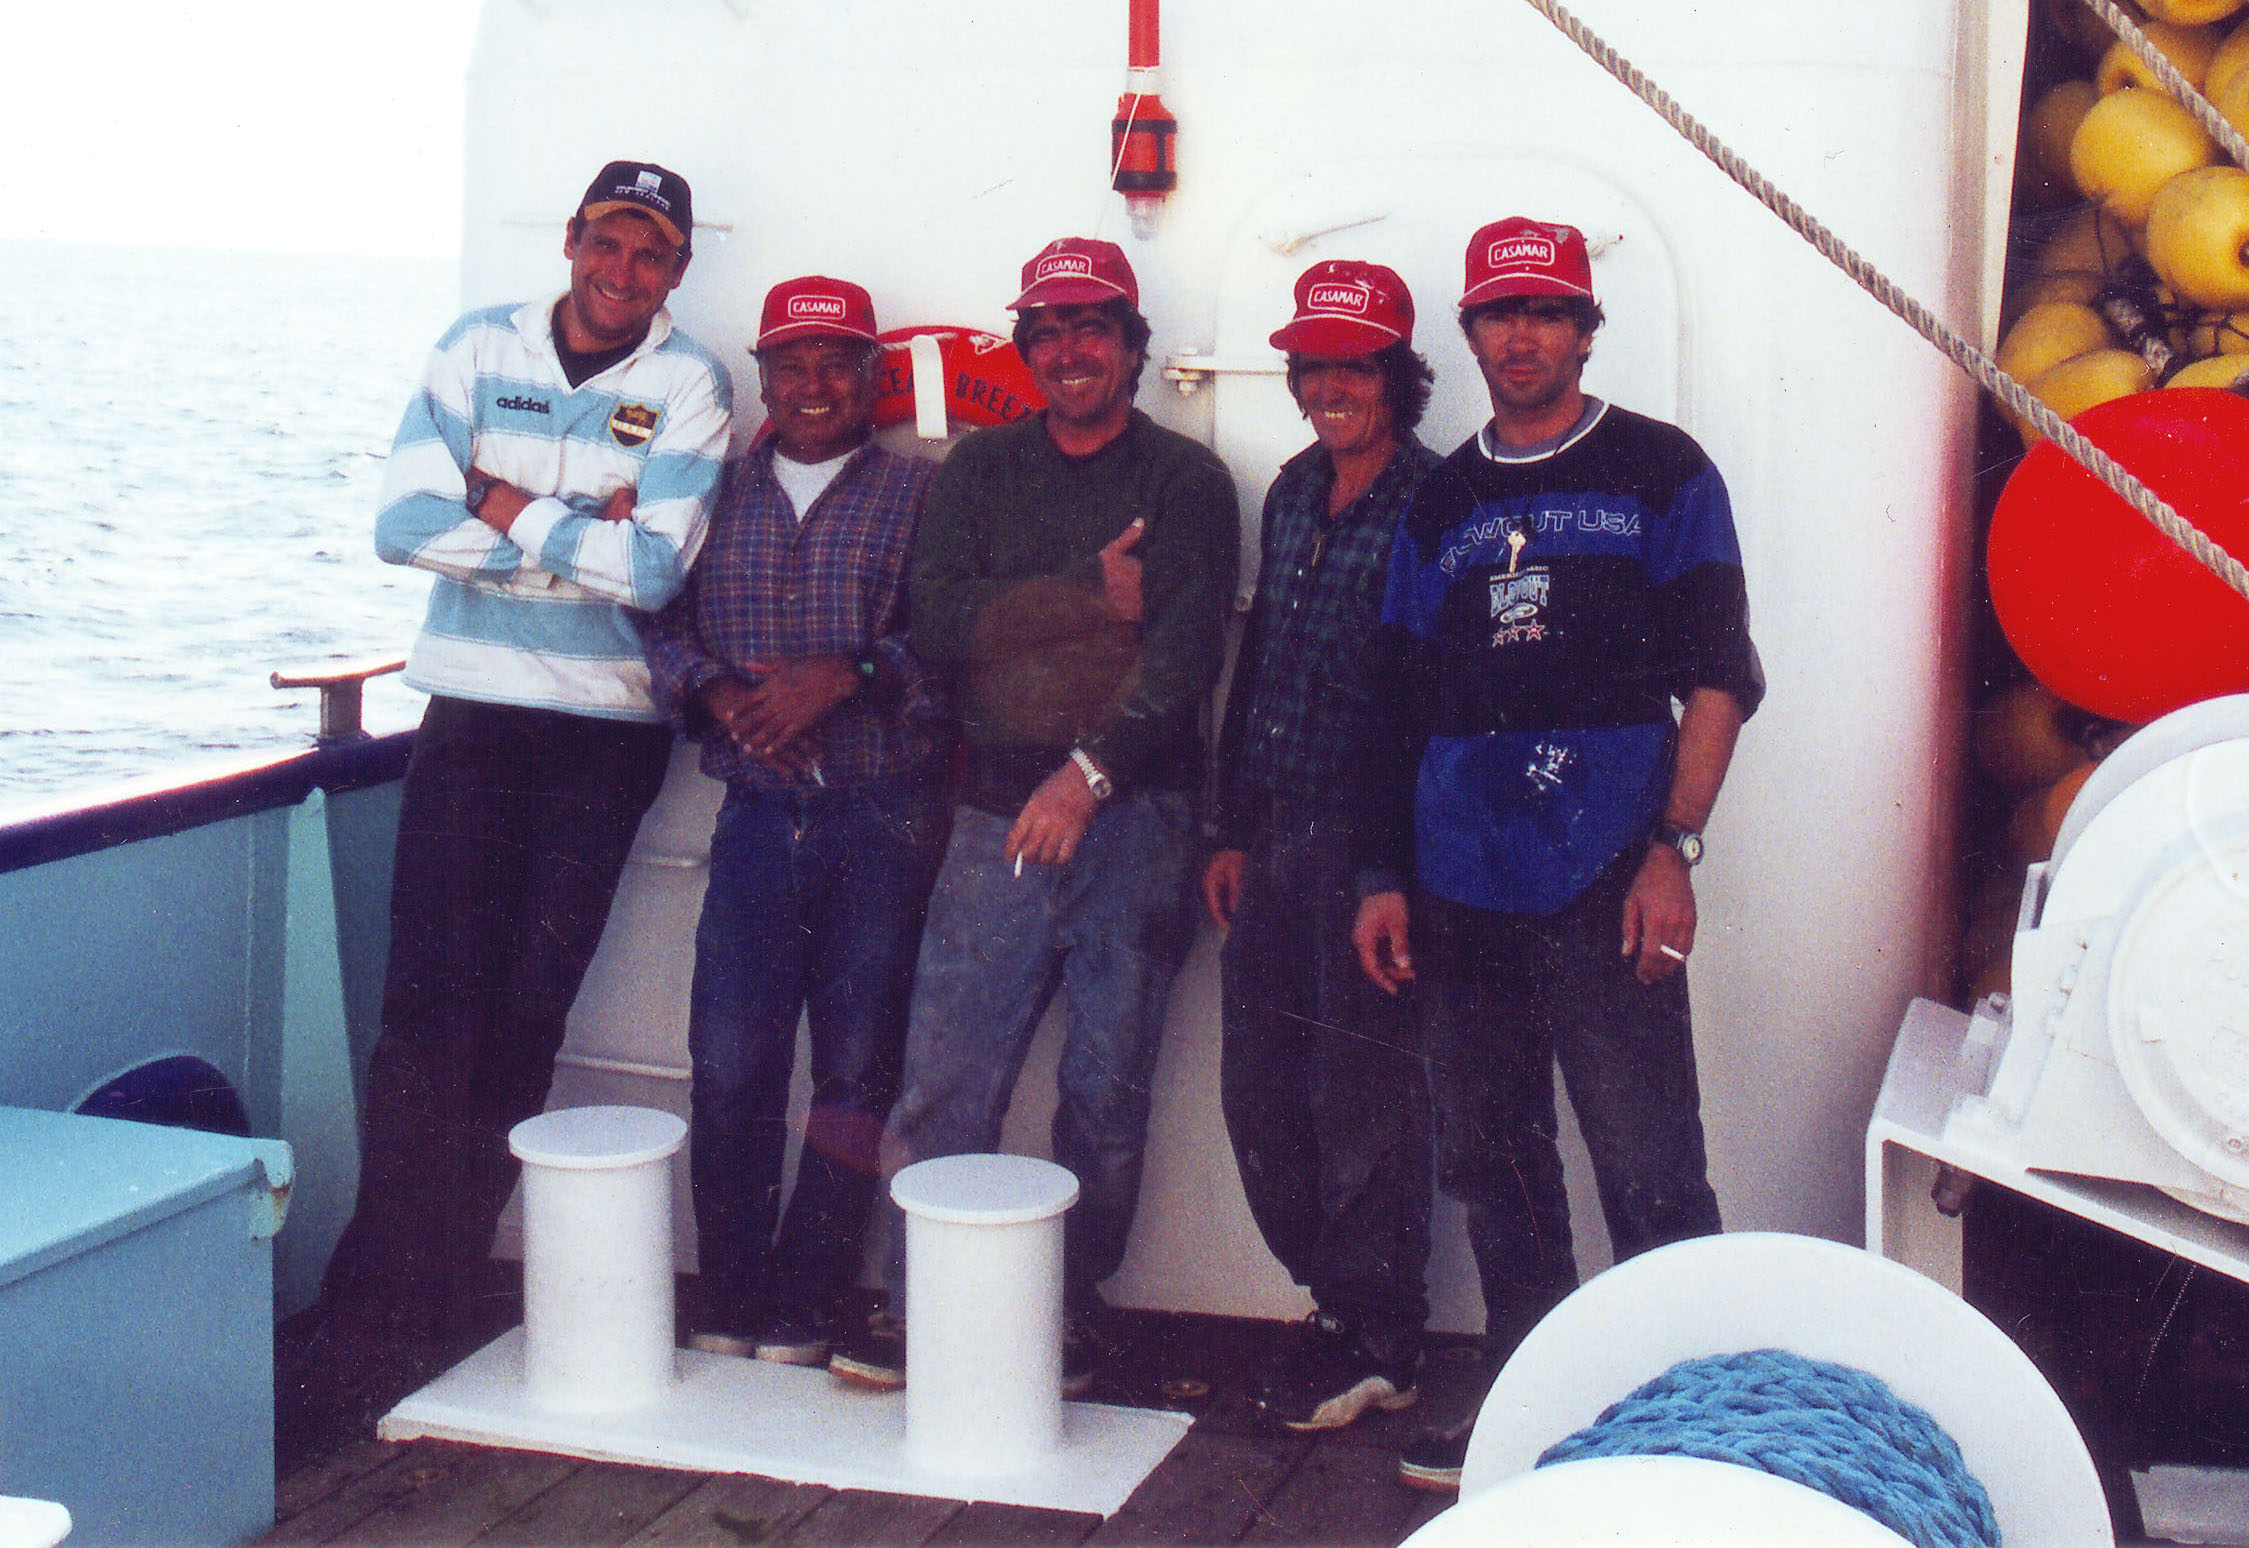 Ocean Breeze, Purse Seiner, South Pacific, 2001. I'm with a Peruvian, Madeira and Philippinos on board